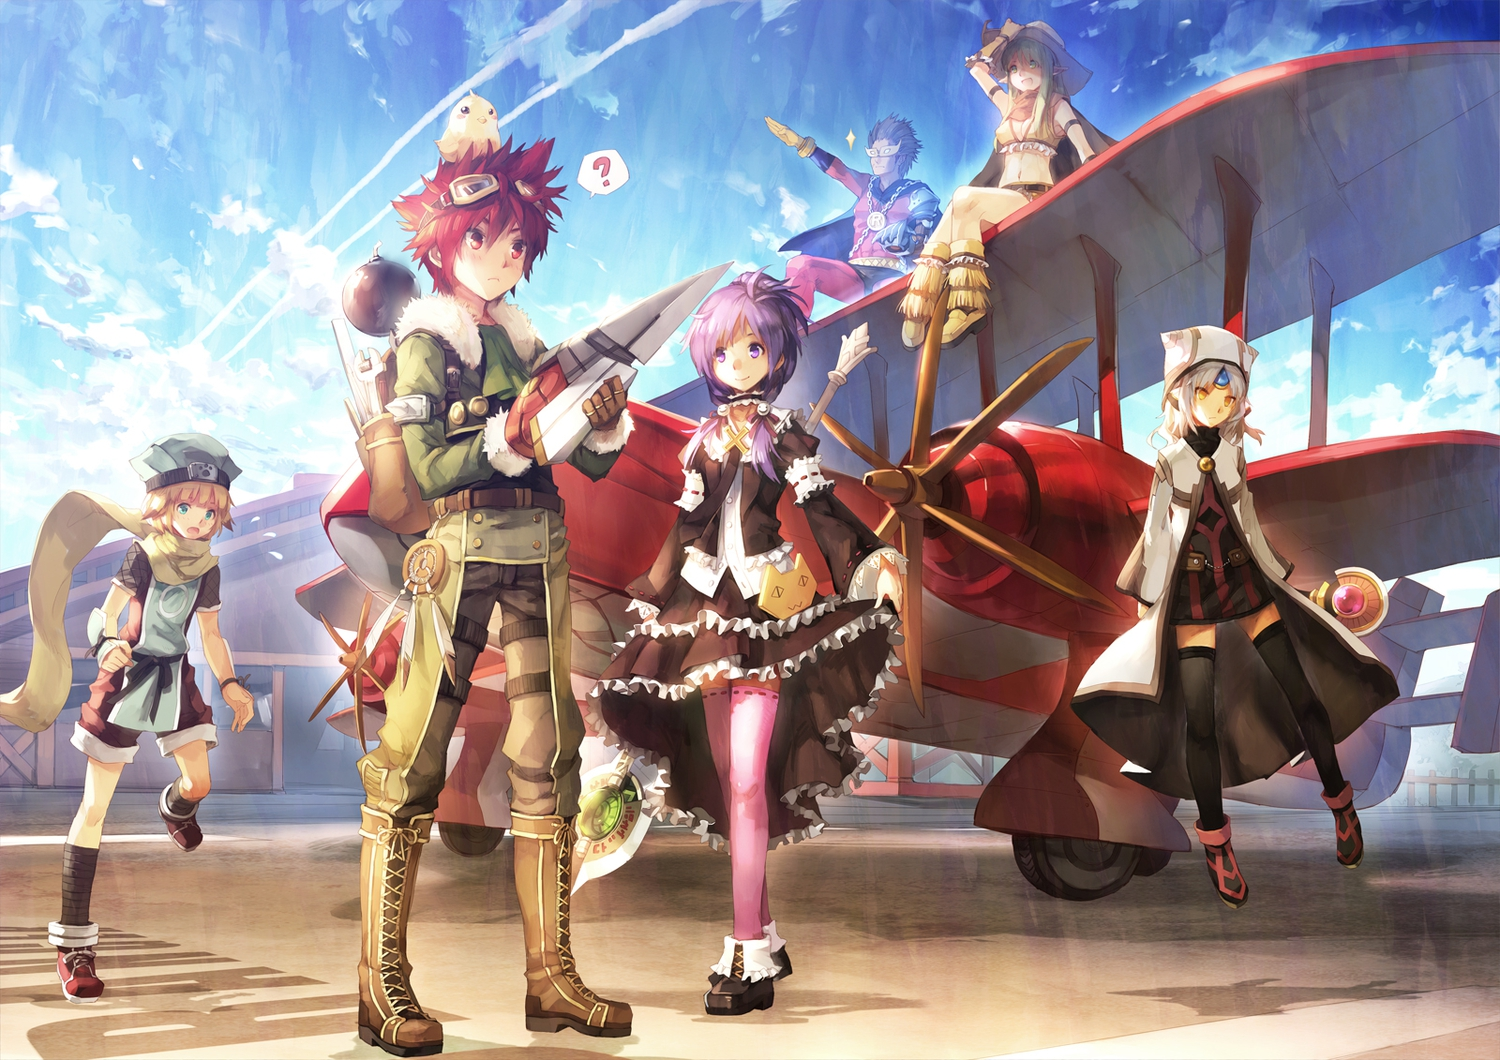 aircraft aisha_(elsword) animal azuma_reiji bird blonde_hair blue_eyes blush boots brown_hair chung_(elsword) clouds dress elsword elsword_(character) eve_(elsword) feathers goggles green_eyes green_hair group hat long_hair male mask pointed_ears purple_eyes purple_hair raven_(elsword) red_eyes red_hair rena_(elsword) ribbons scarf scorpion5050 short_hair shorts sky thighhighs weapon white_hair yellow_eyes zwei_ii